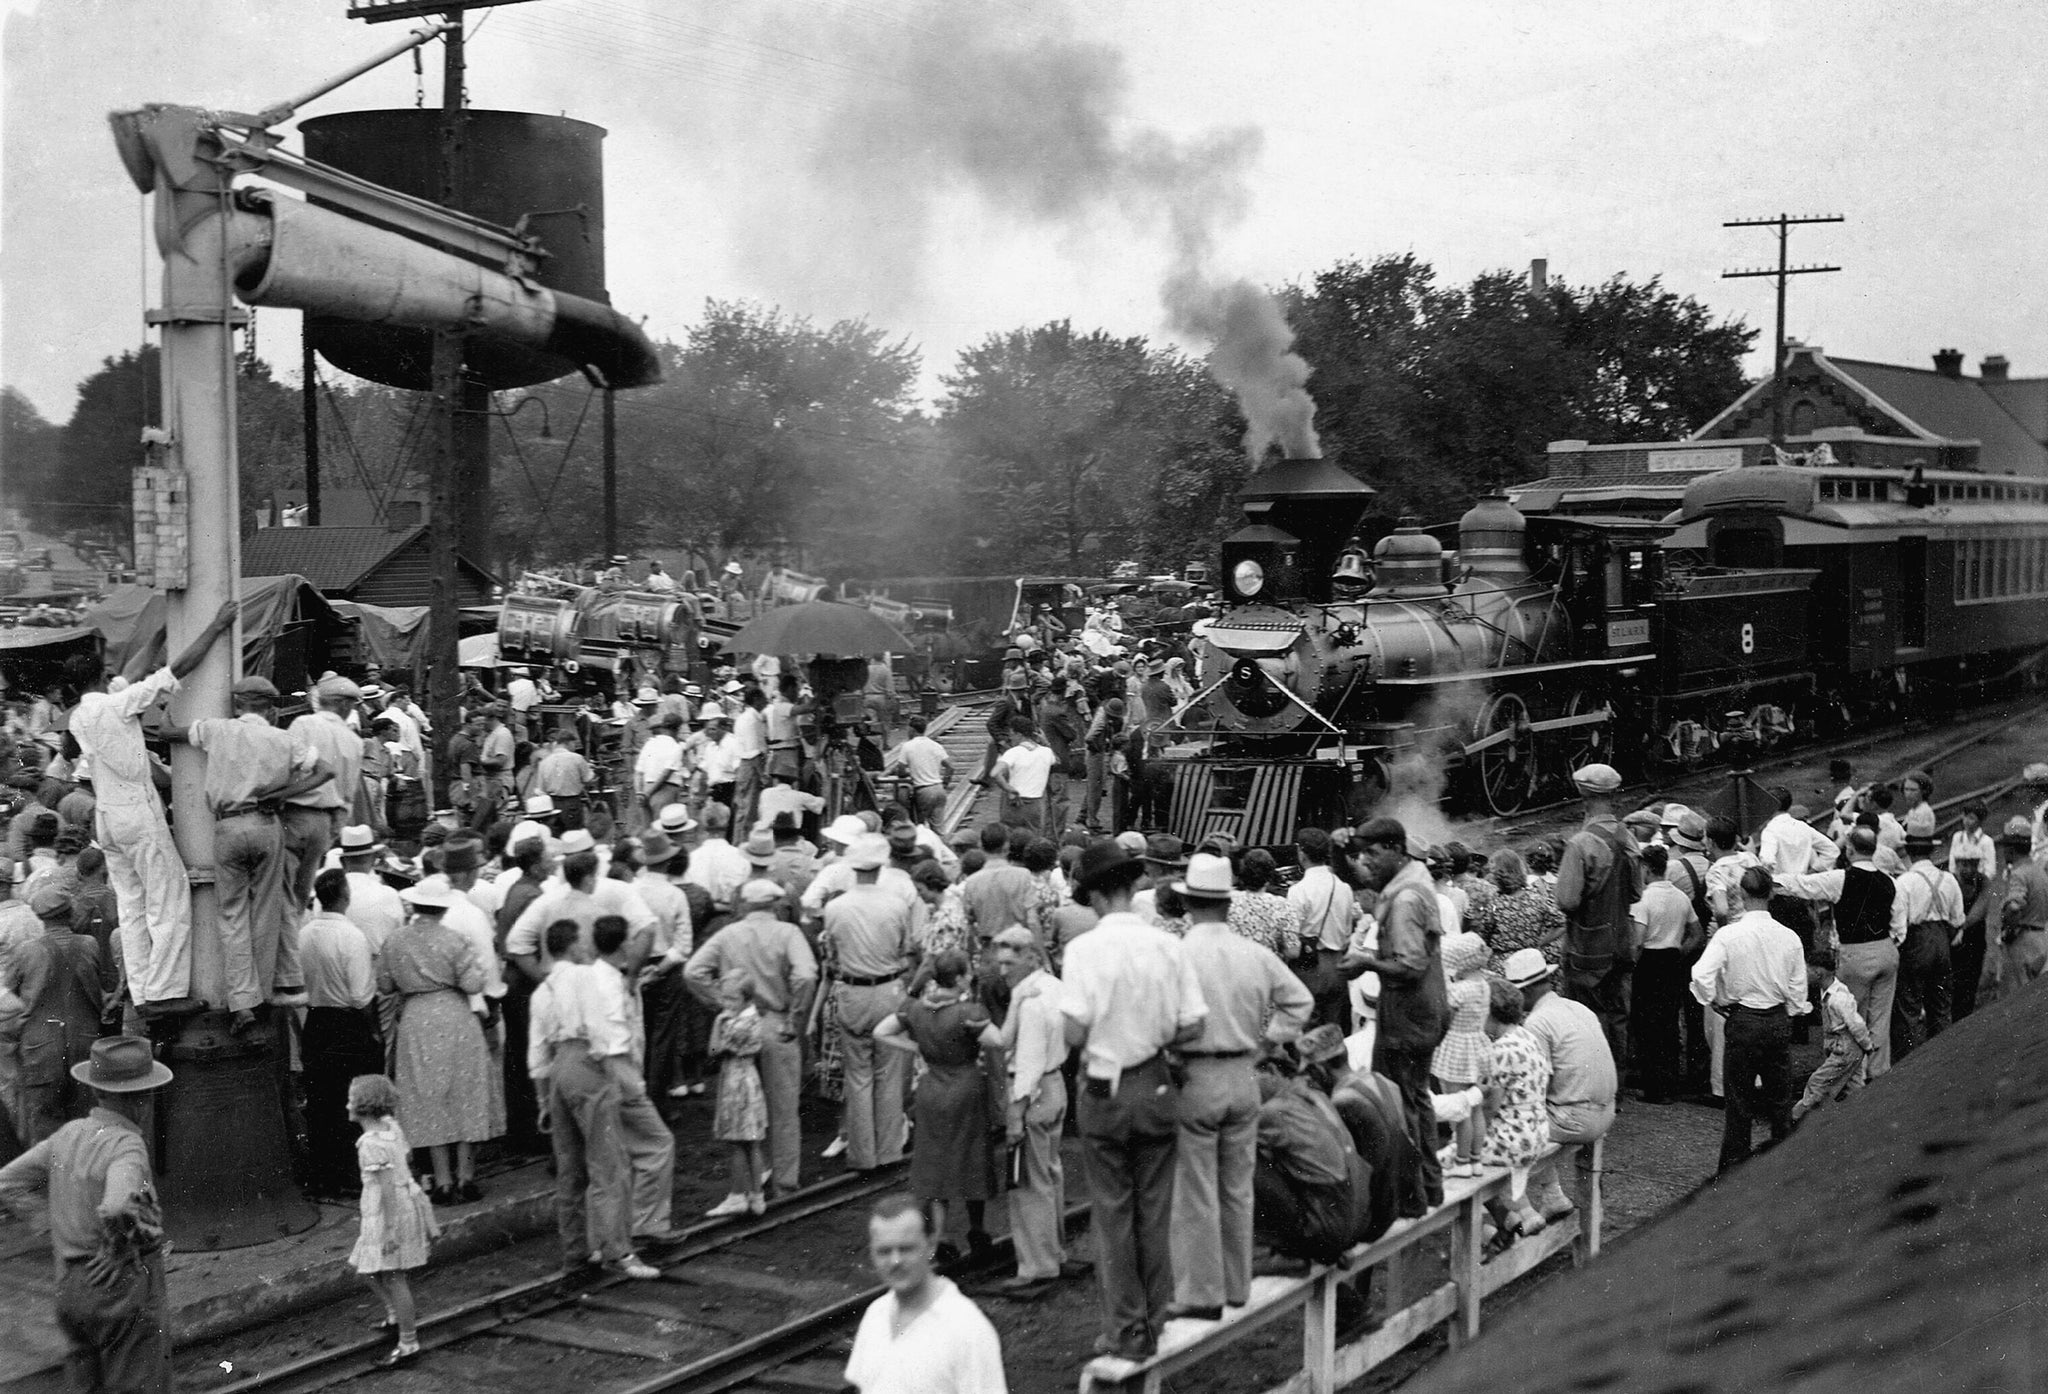 Spectators watch the robbery scene for Jesse James, which was filmed at the train station in Southwest City, 1938. -- Courtesy of Deanna Booyer, Newton County Historical Society & Park